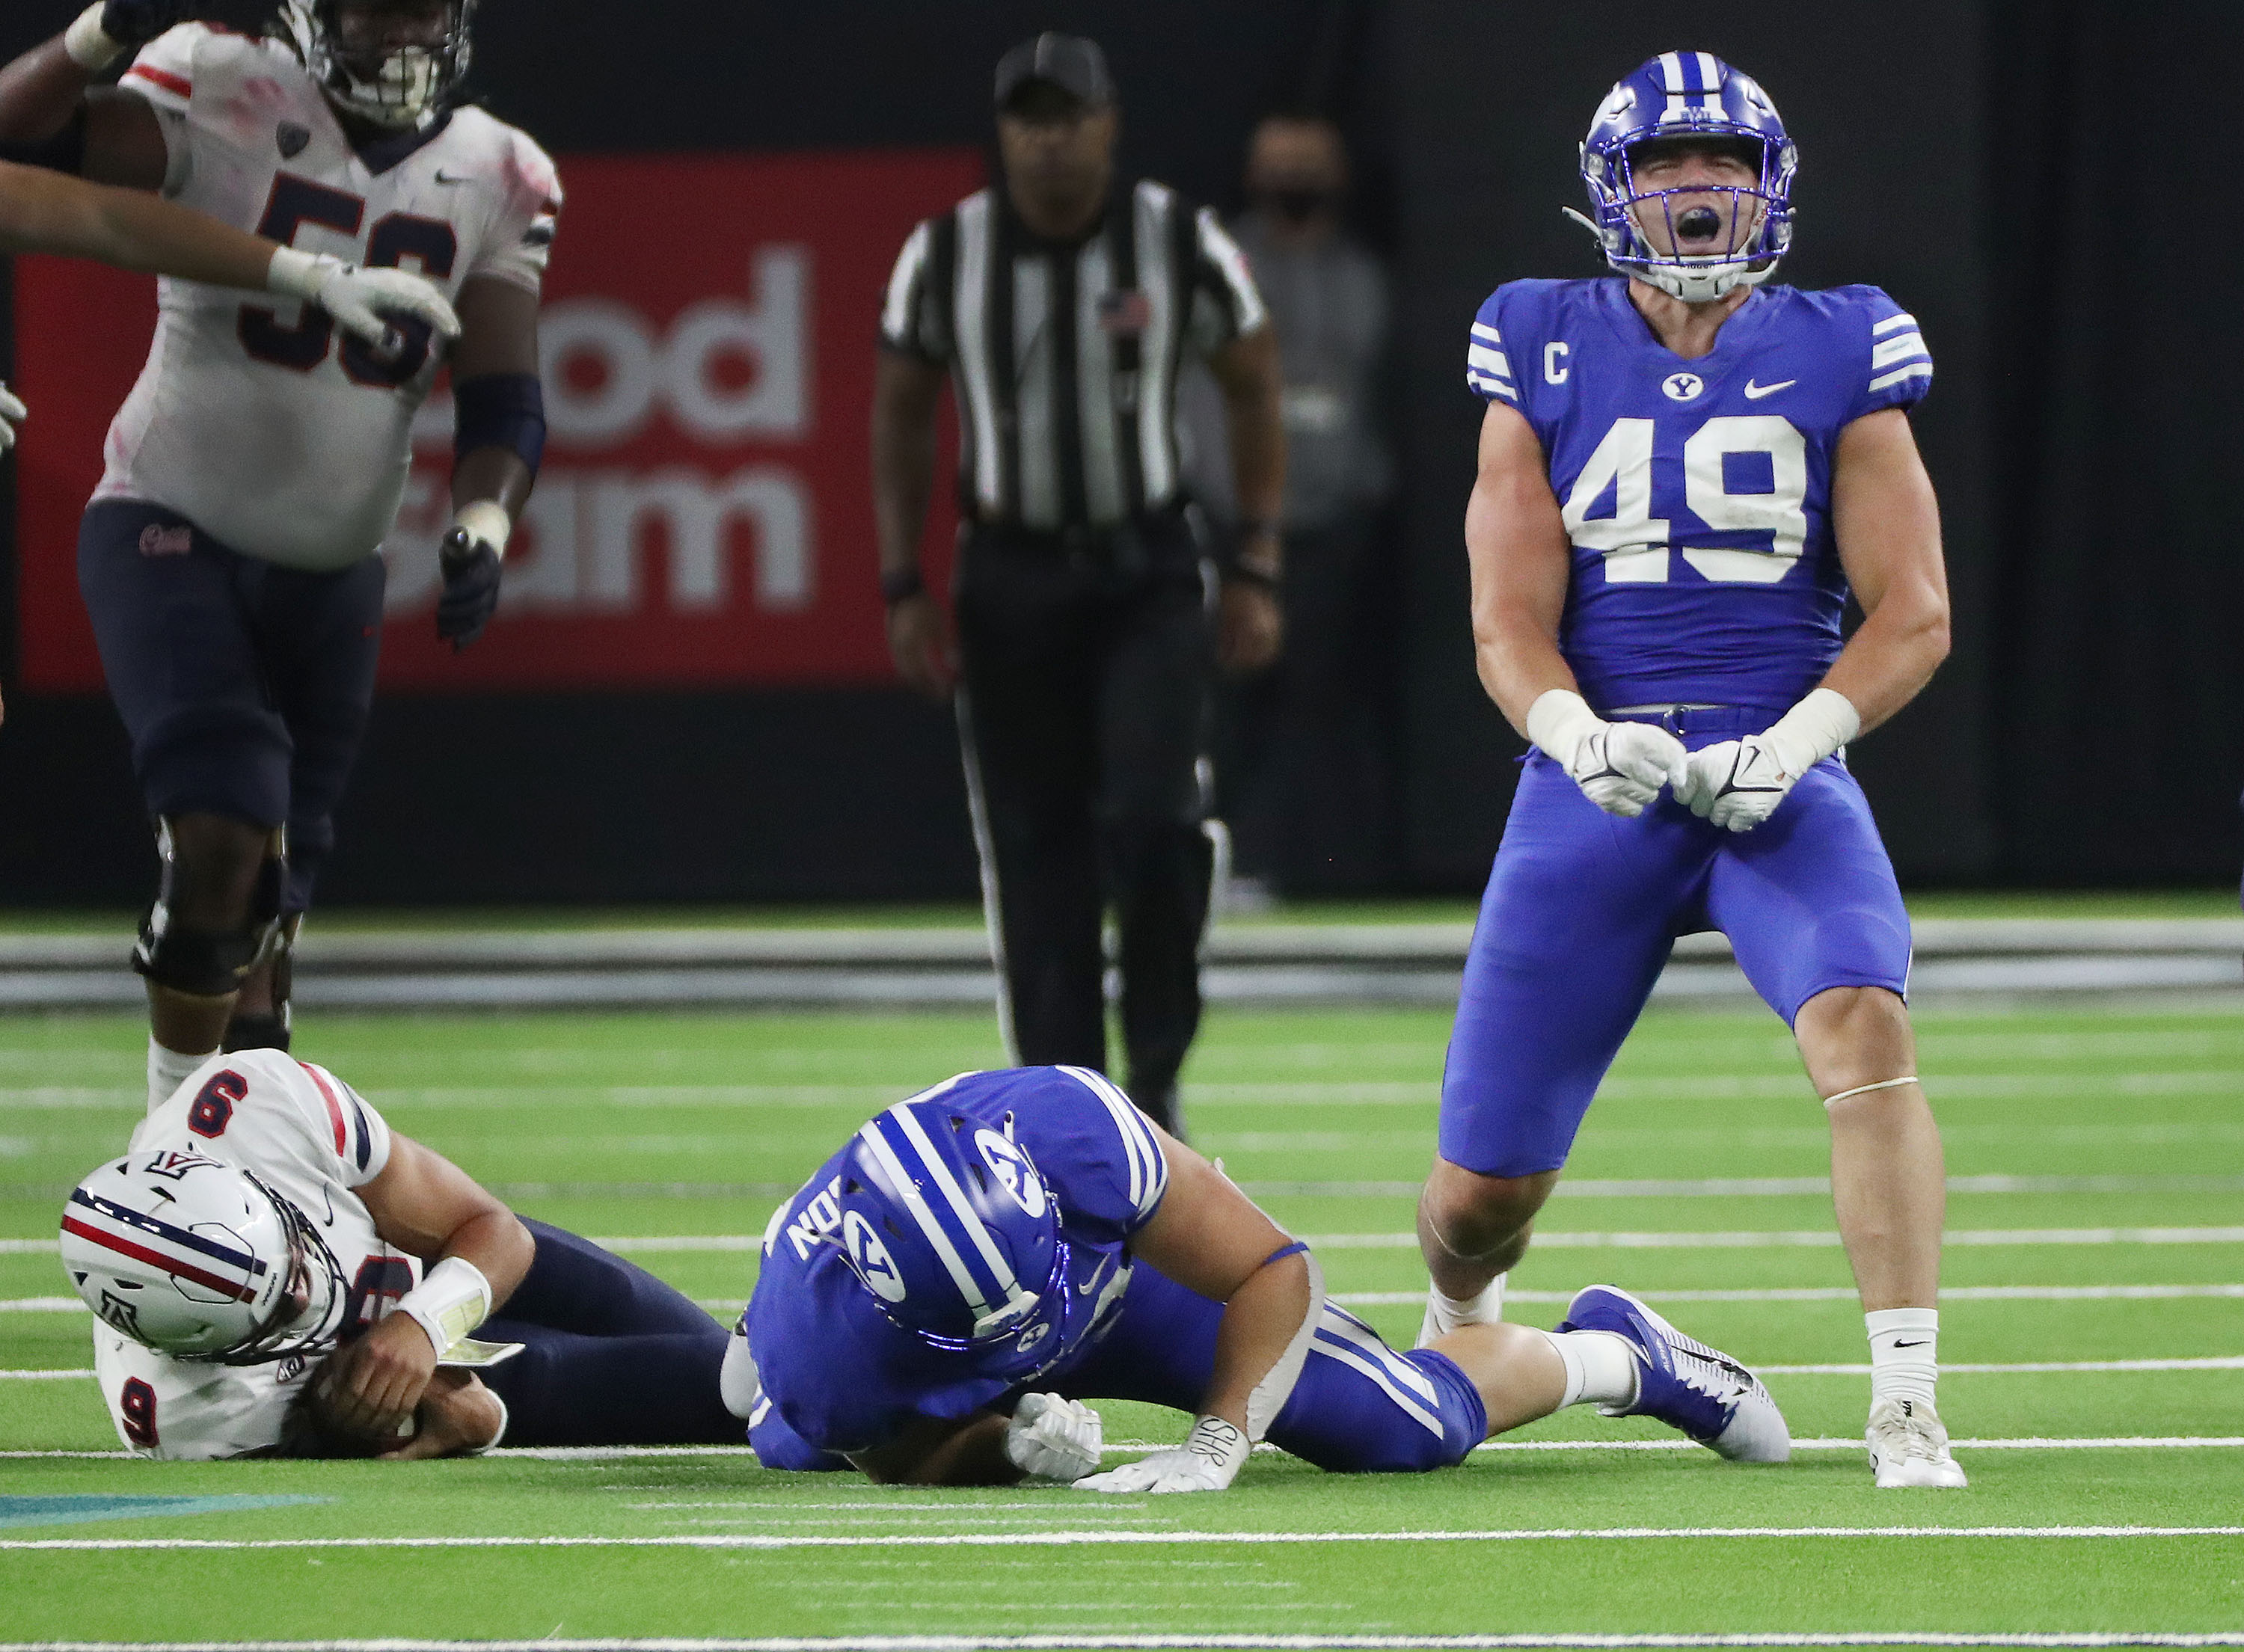 BYU's defense came up with four sacks against Arizona in a 24-16 win on Sept. 4, 2021, but missed tackles are a concern moving forward.